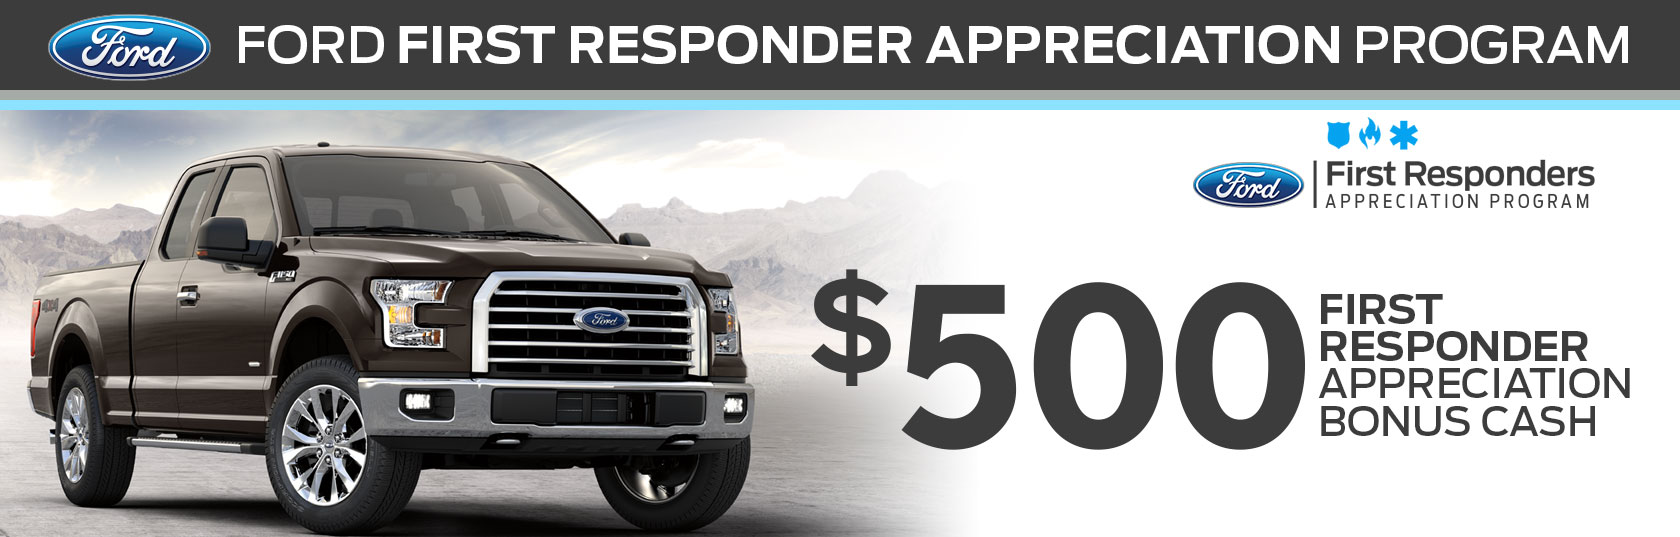 first responder 39 s appreciation program. Cars Review. Best American Auto & Cars Review